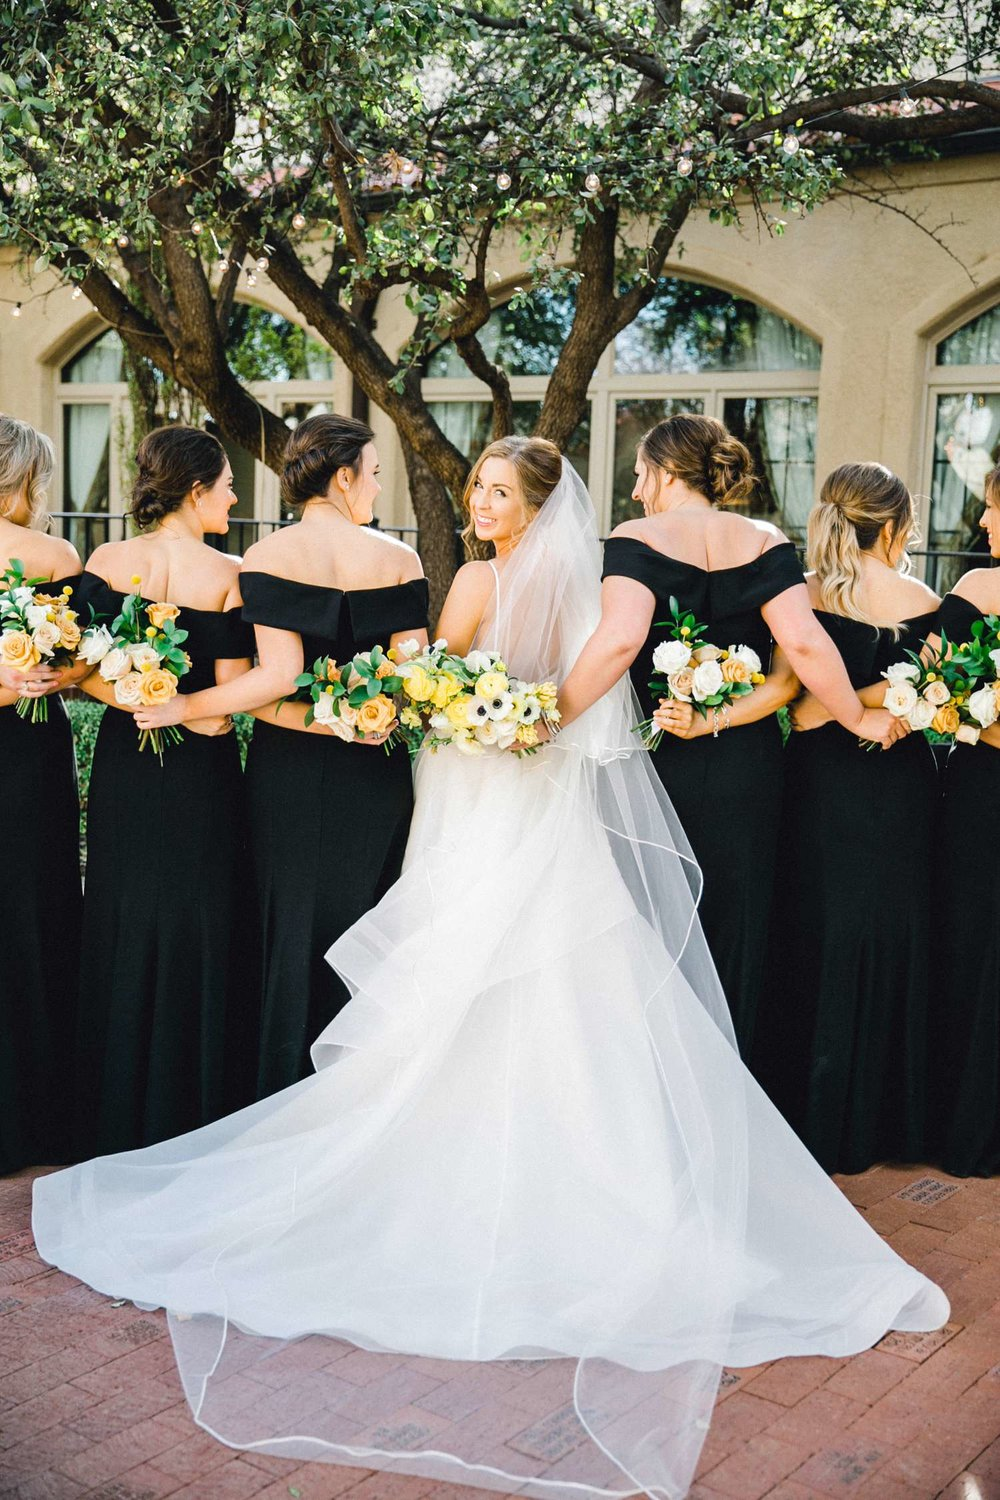 MARLEE+LLOYD+MORGAN+ALLEEJ+TEXAS+TECH+MERKET+ALUMNI+WEDDINGS+LUBBOCK+WEST+TABLE+CLASSIC+SPAIN_0083.jpg